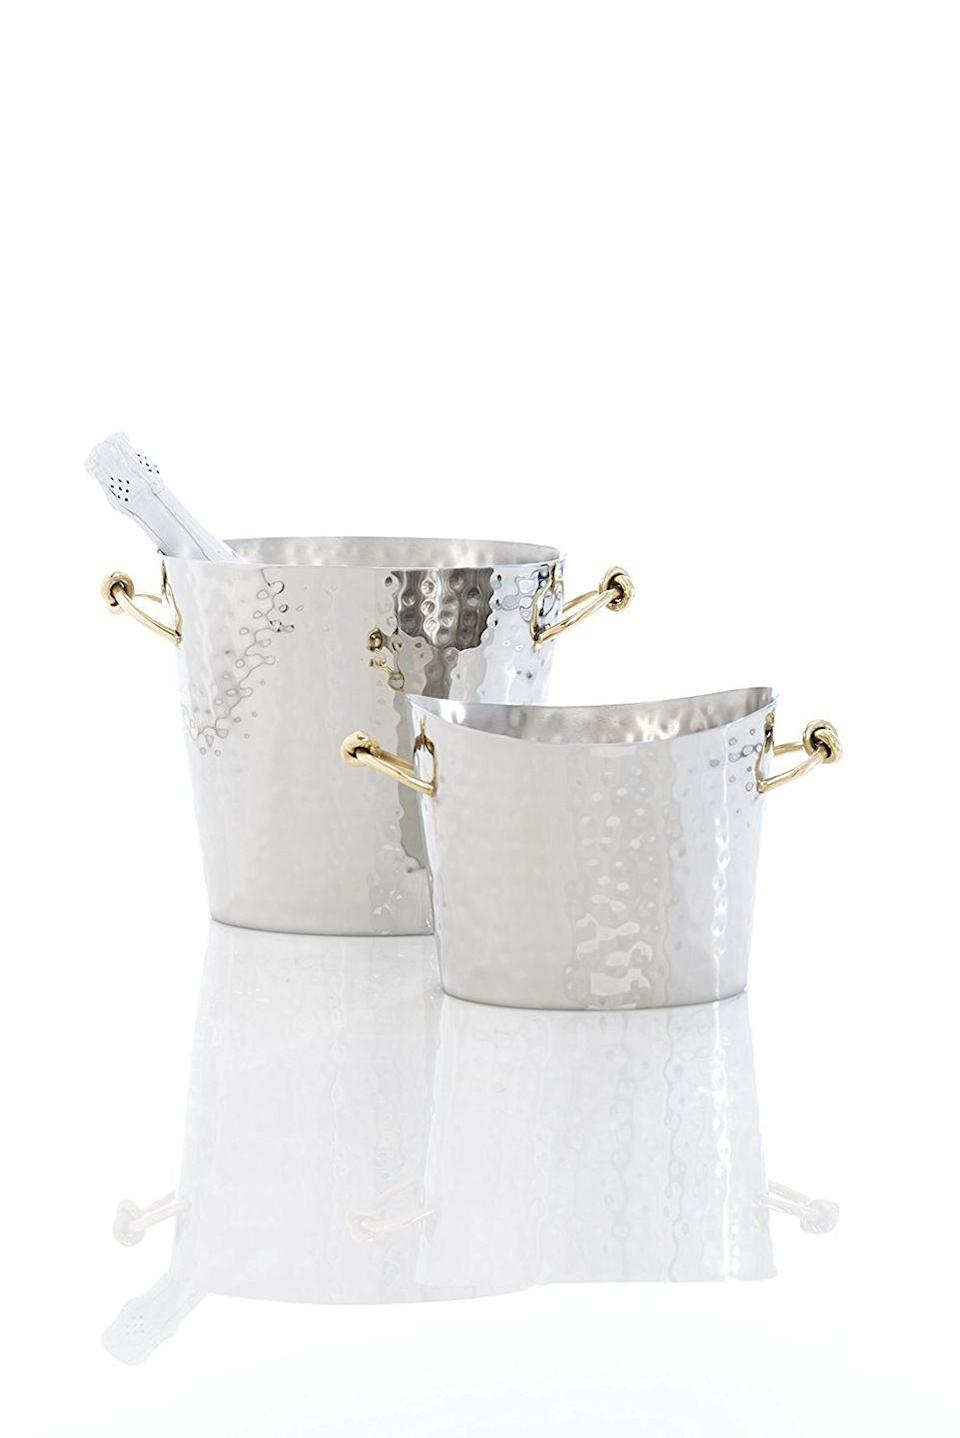 """<p>The brass handles of this ice bucket are coiled together, and it's the classiest – and least cheesy — nod we've seen to """"tying the knot"""" gifts.</p><p><strong><em>BUY IT NOW: Shiraleah Large Eternity Ice Bucket, $74; </em></strong><strong><em><a href=""""https://www.amazon.com/Shiraleah-6-5-Eternity-Bucket-Large/dp/B00XBQ2KHQ/ref=sr_1_5?s=home-garden&ie=UTF8&qid=1506962072&sr=1-5&keywords=shiraleah+eternity&tag=syn-yahoo-20&ascsubtag=%5Bartid%7C10063.g.35536497%5Bsrc%7Cyahoo-us"""" rel=""""nofollow noopener"""" target=""""_blank"""" data-ylk=""""slk:Amazon.com"""" class=""""link rapid-noclick-resp"""">Amazon.com</a></em></strong></p>"""